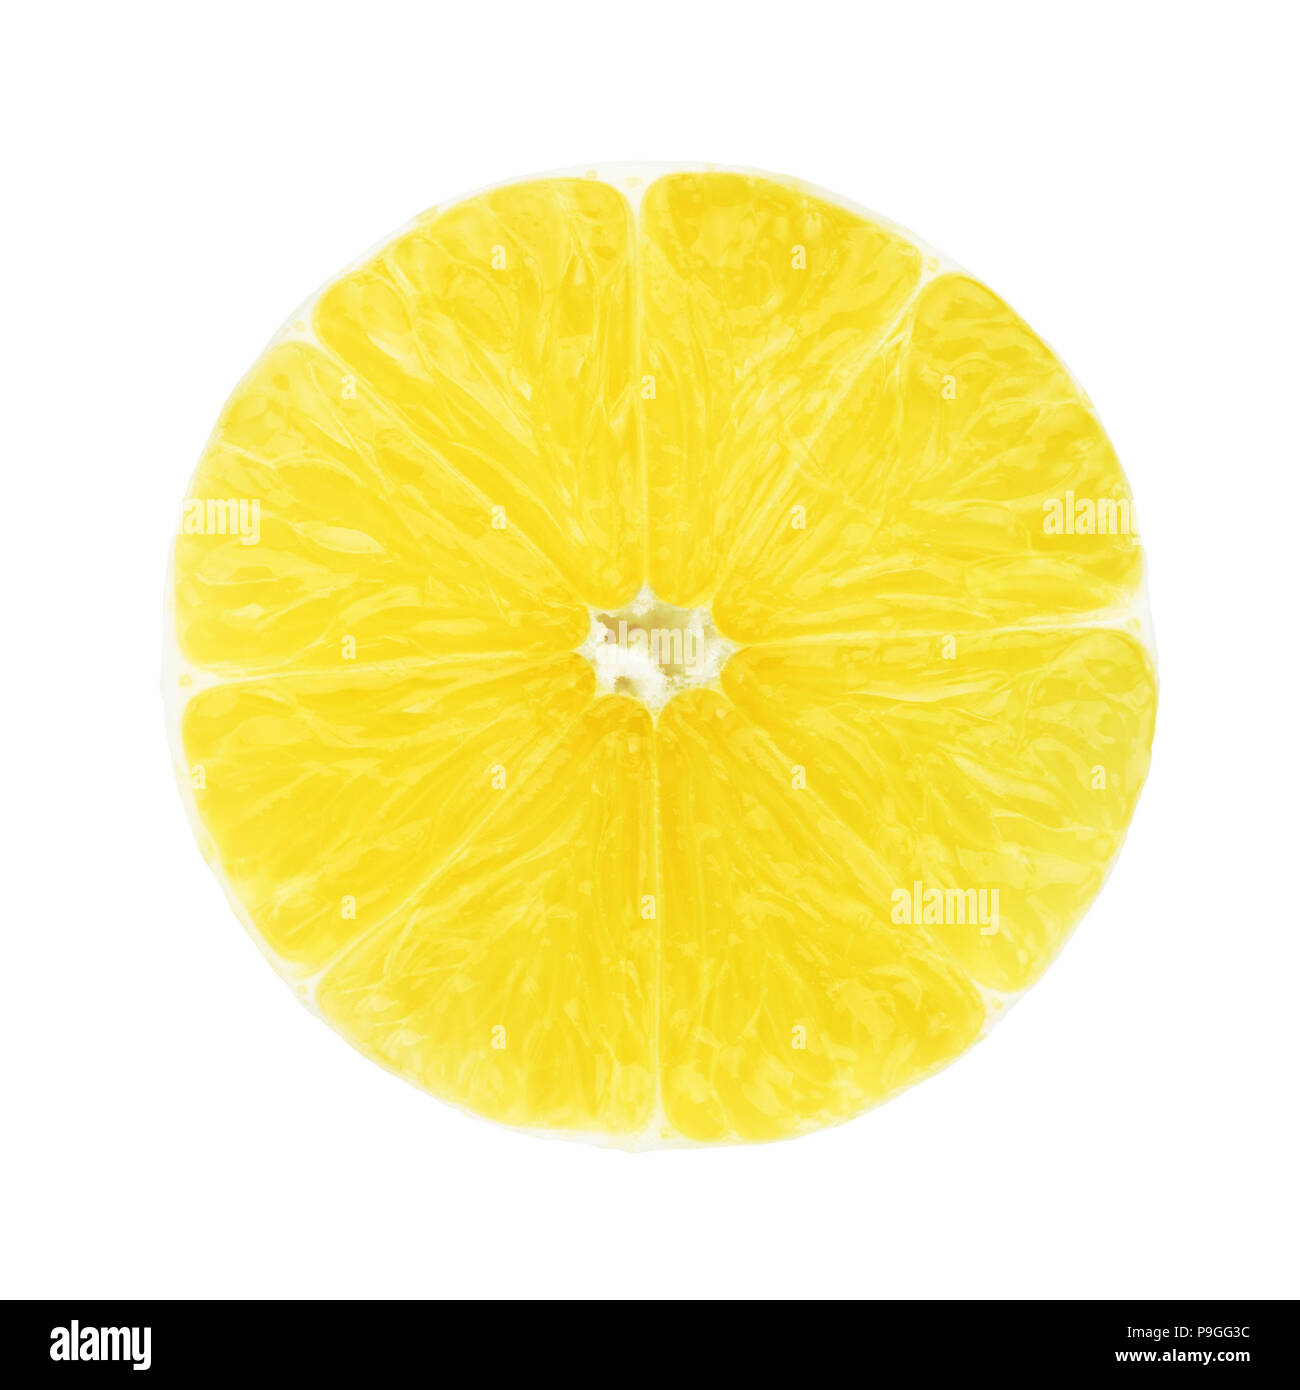 a slice of lemon without Peel - Stock Image